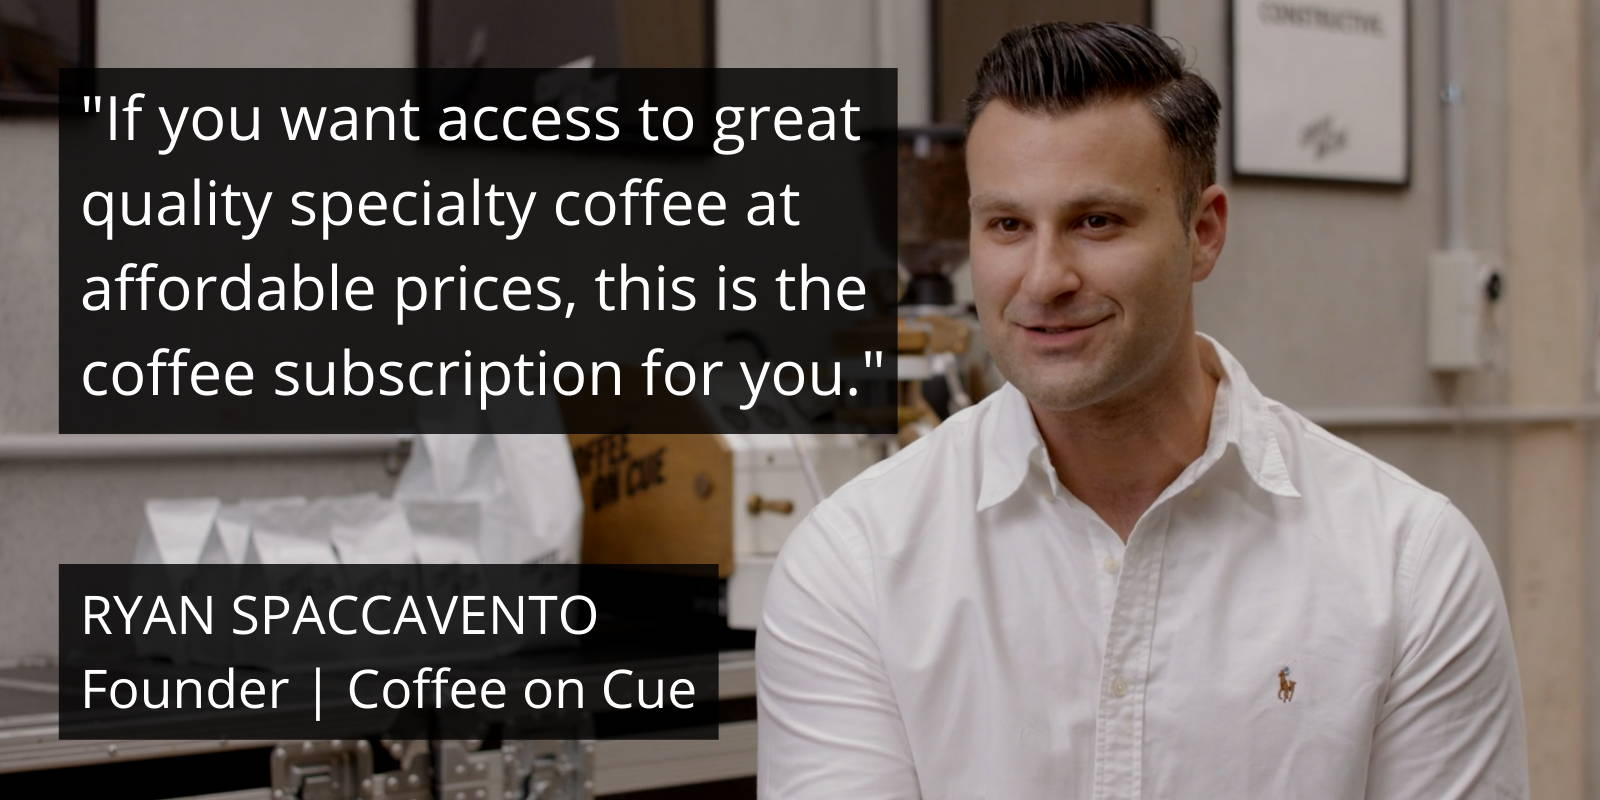 Ryan Spaccavento, founder of Coffee on Cue